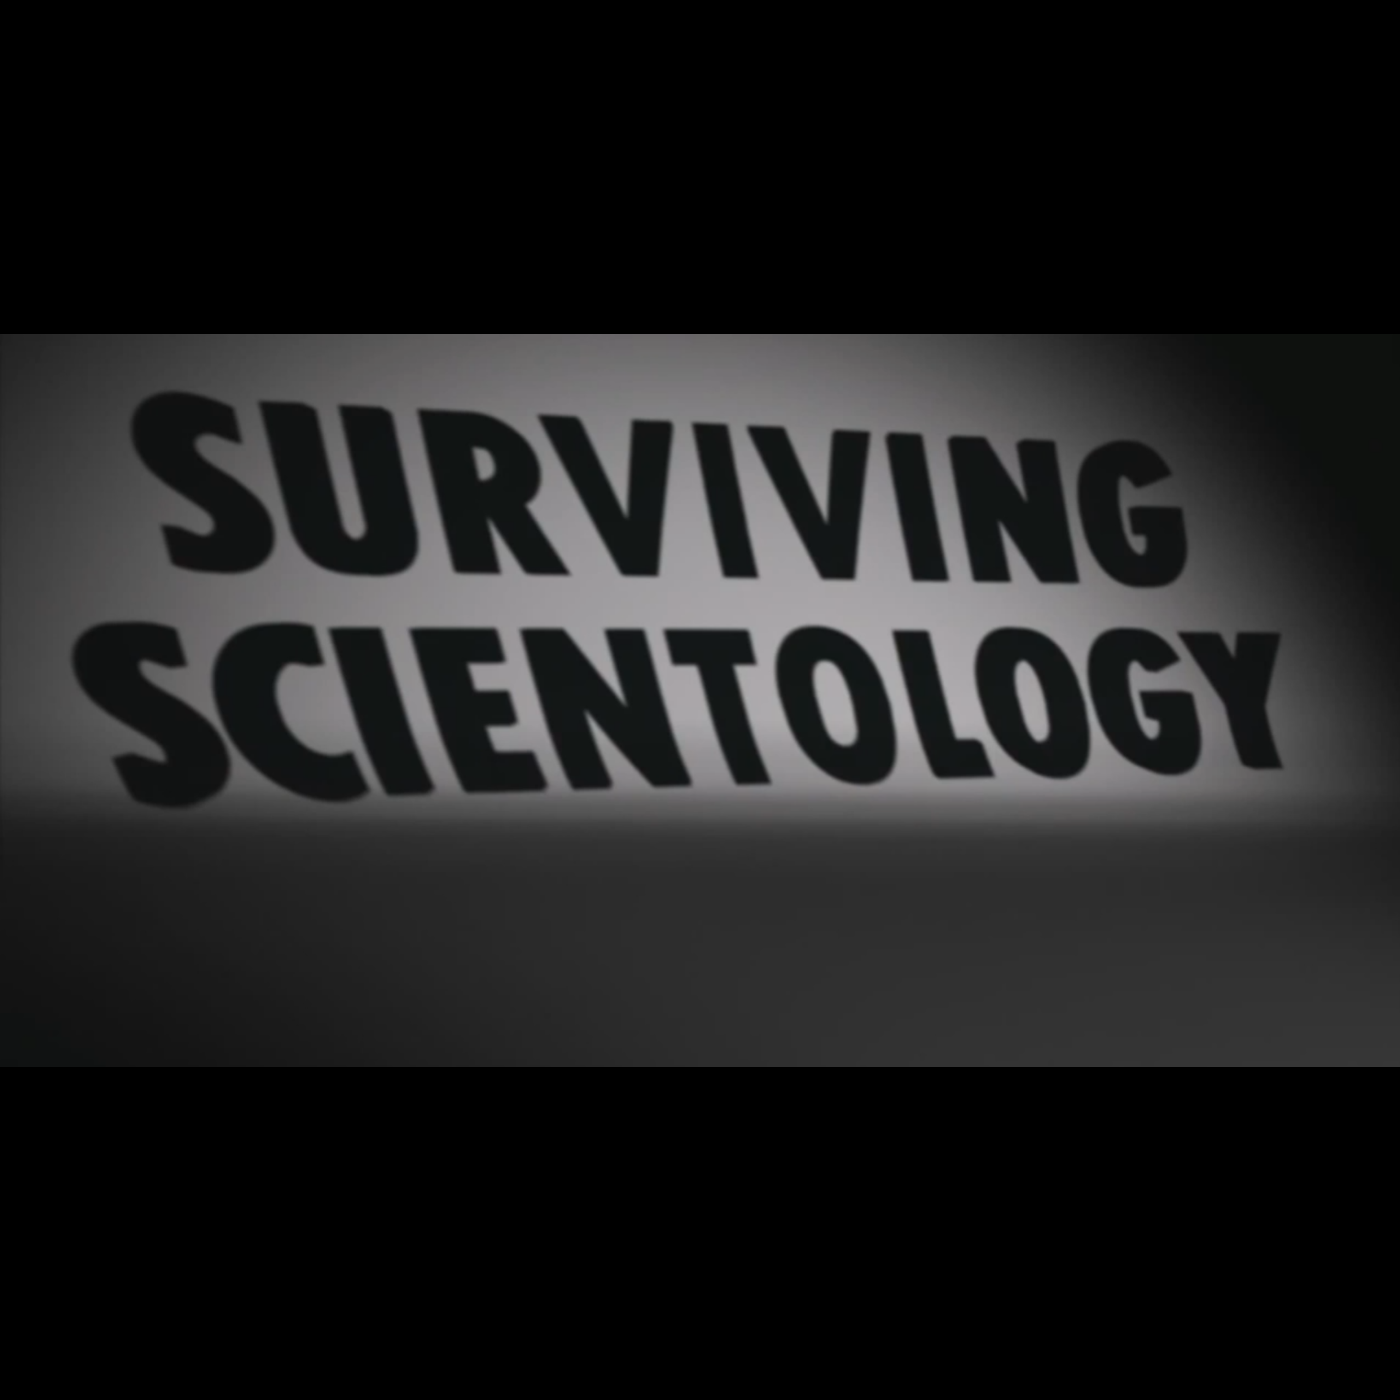 Surviving Scientology Radio show art